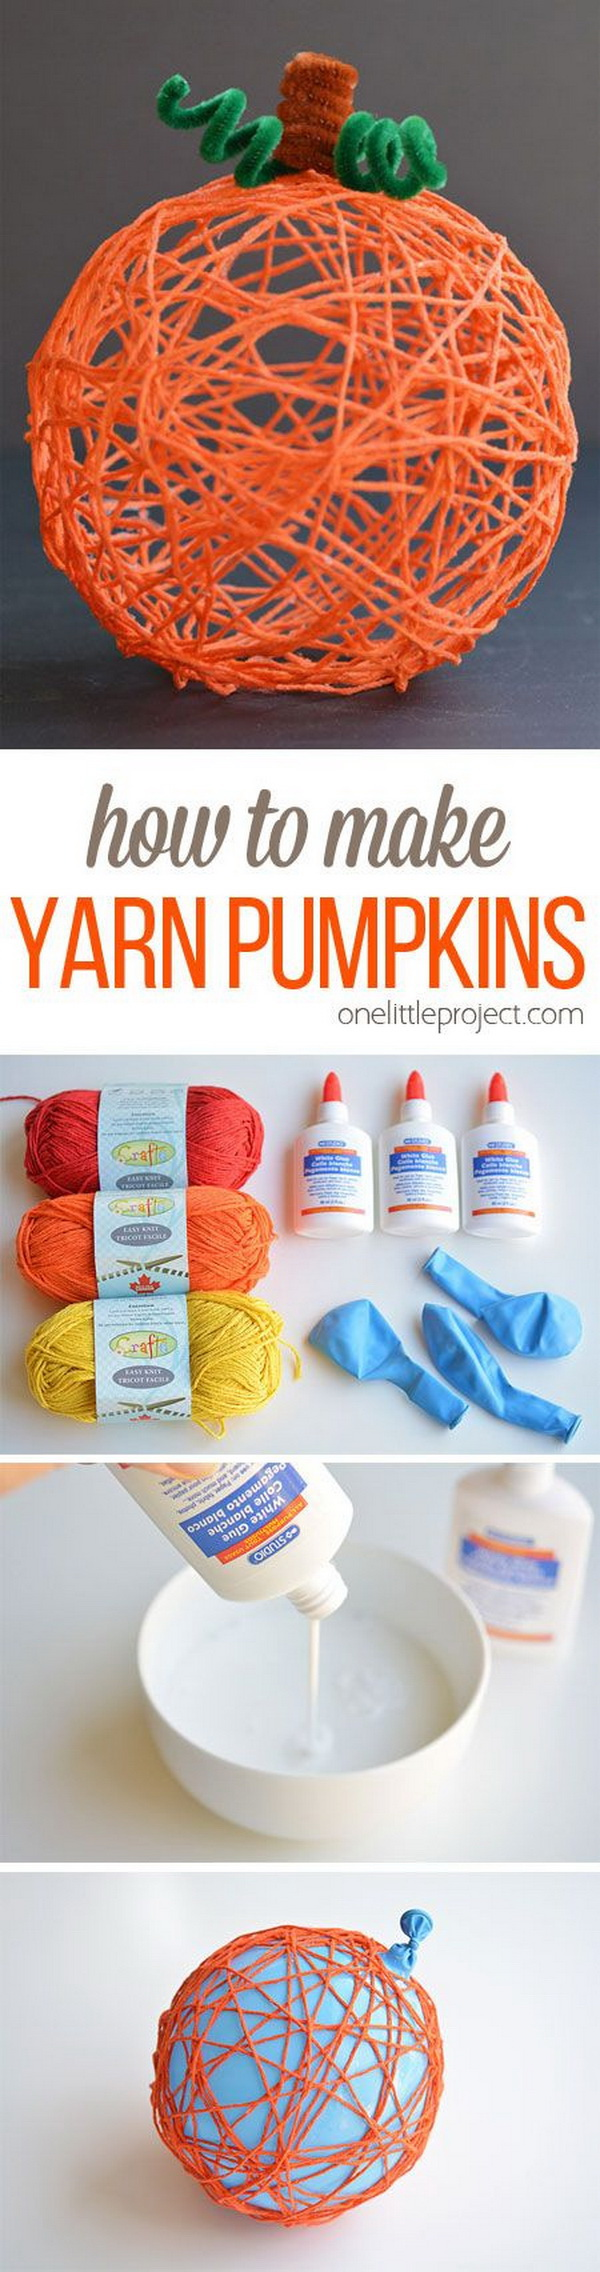 Yarn Pumpkins Using Balloons. Create this unique and lovely pumpkin with yarn and a balloon! They'd make a BEAUTIFUL centerpiece or mantle decoration, or you could even use them for Halloween!